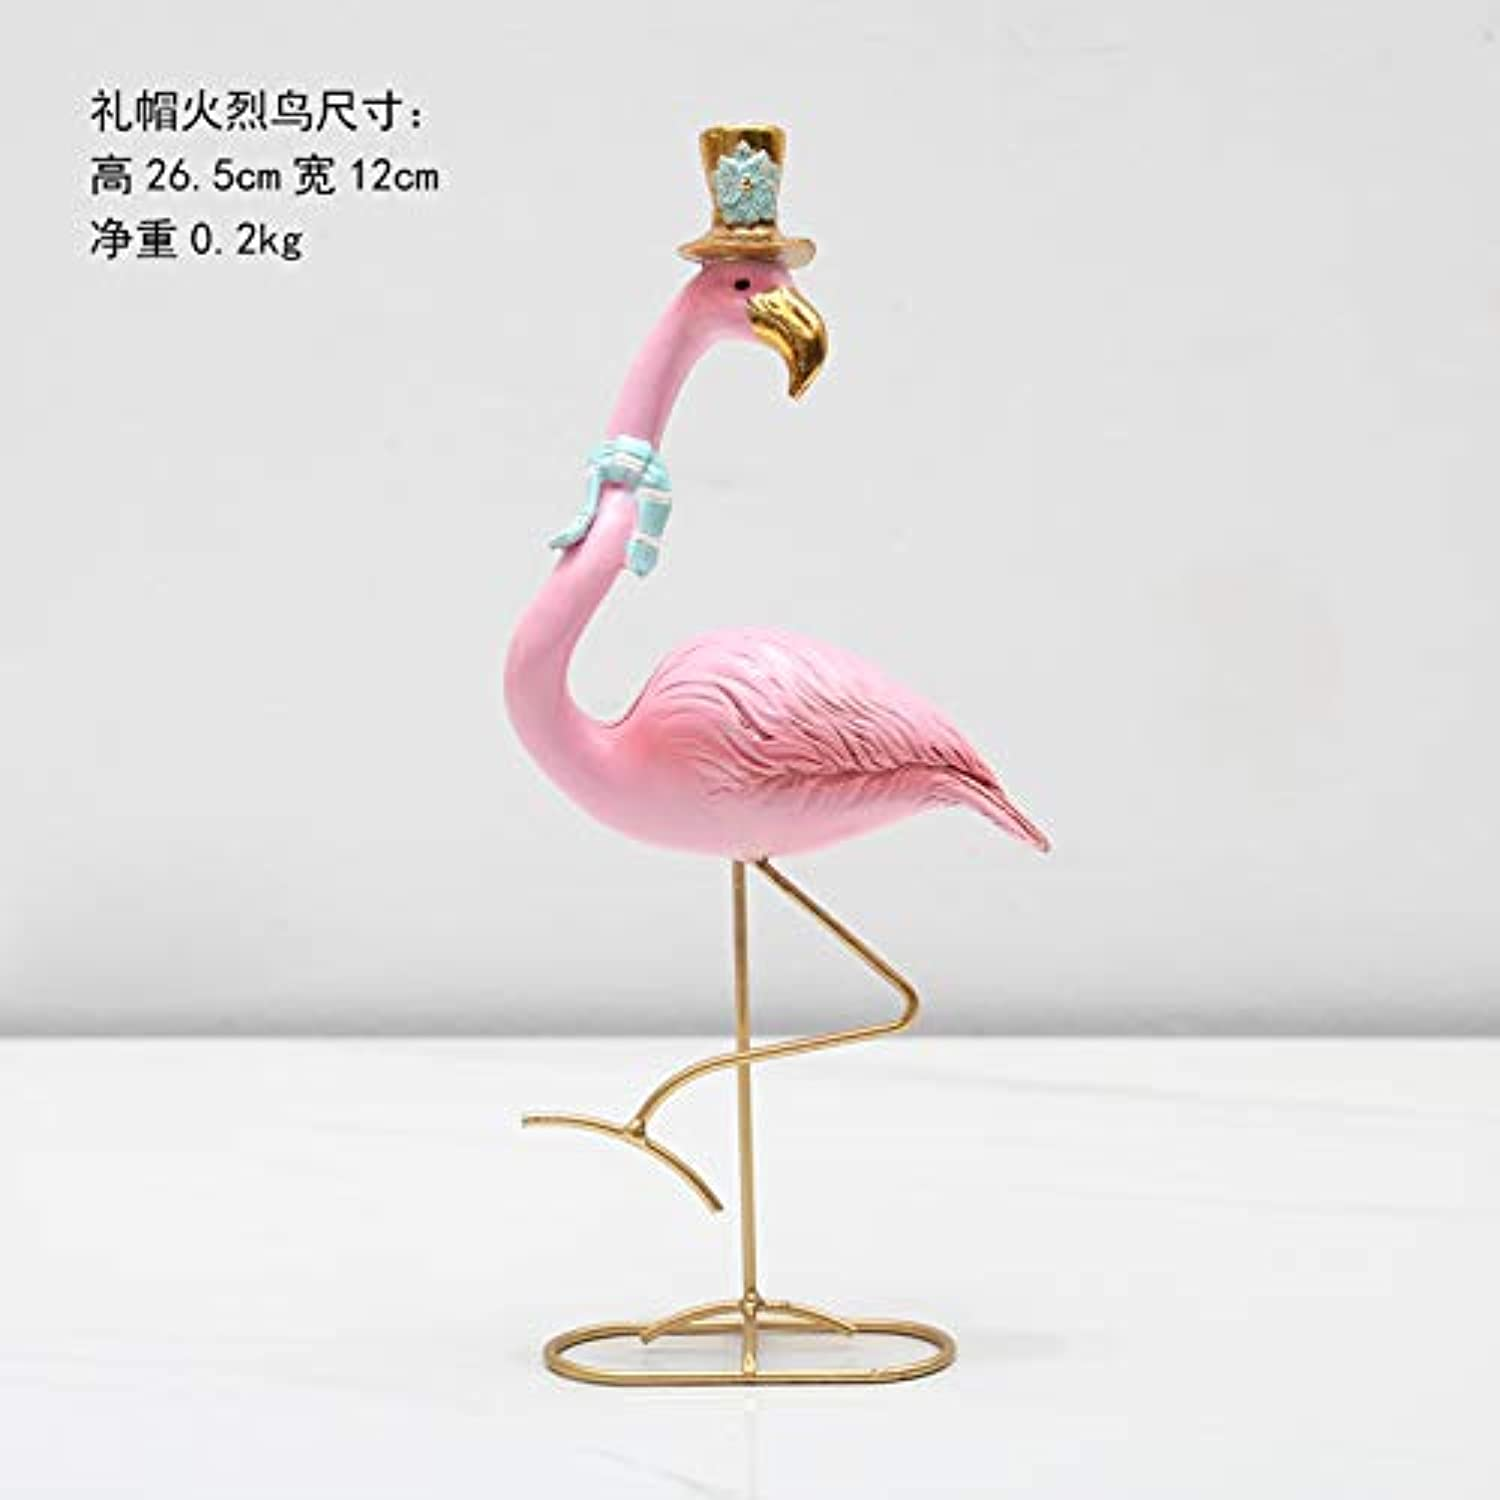 Mqlerry Office Gifts Desktop Resin Decorated Flamingo Creative Home Decoration Desktop Bedroom Living Room Display Gifts,I